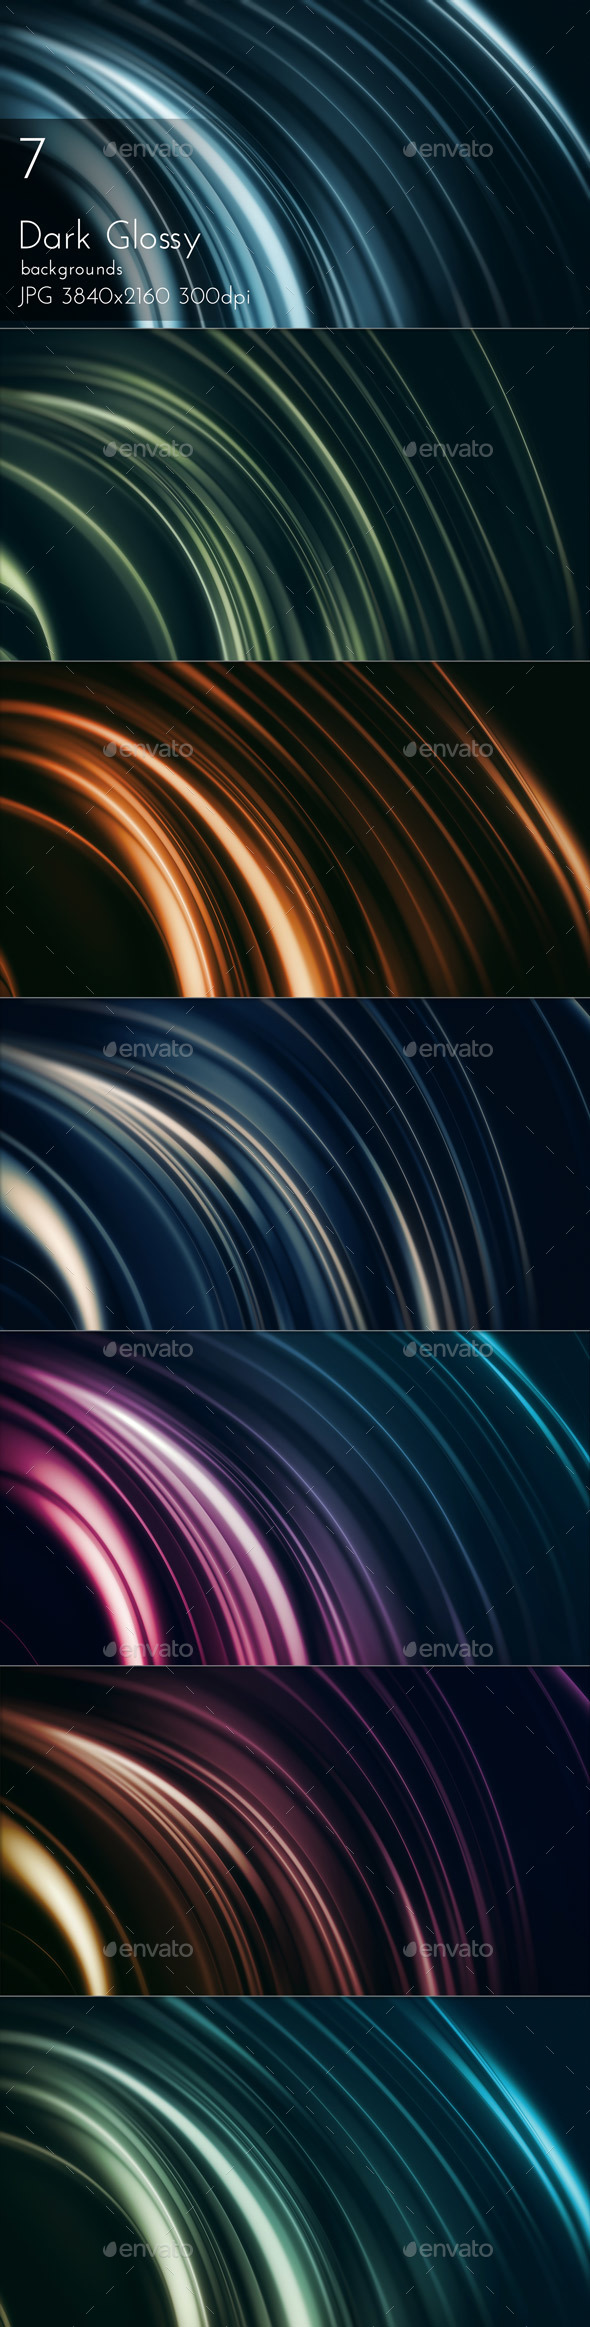 Dark Glossy - Abstract Backgrounds